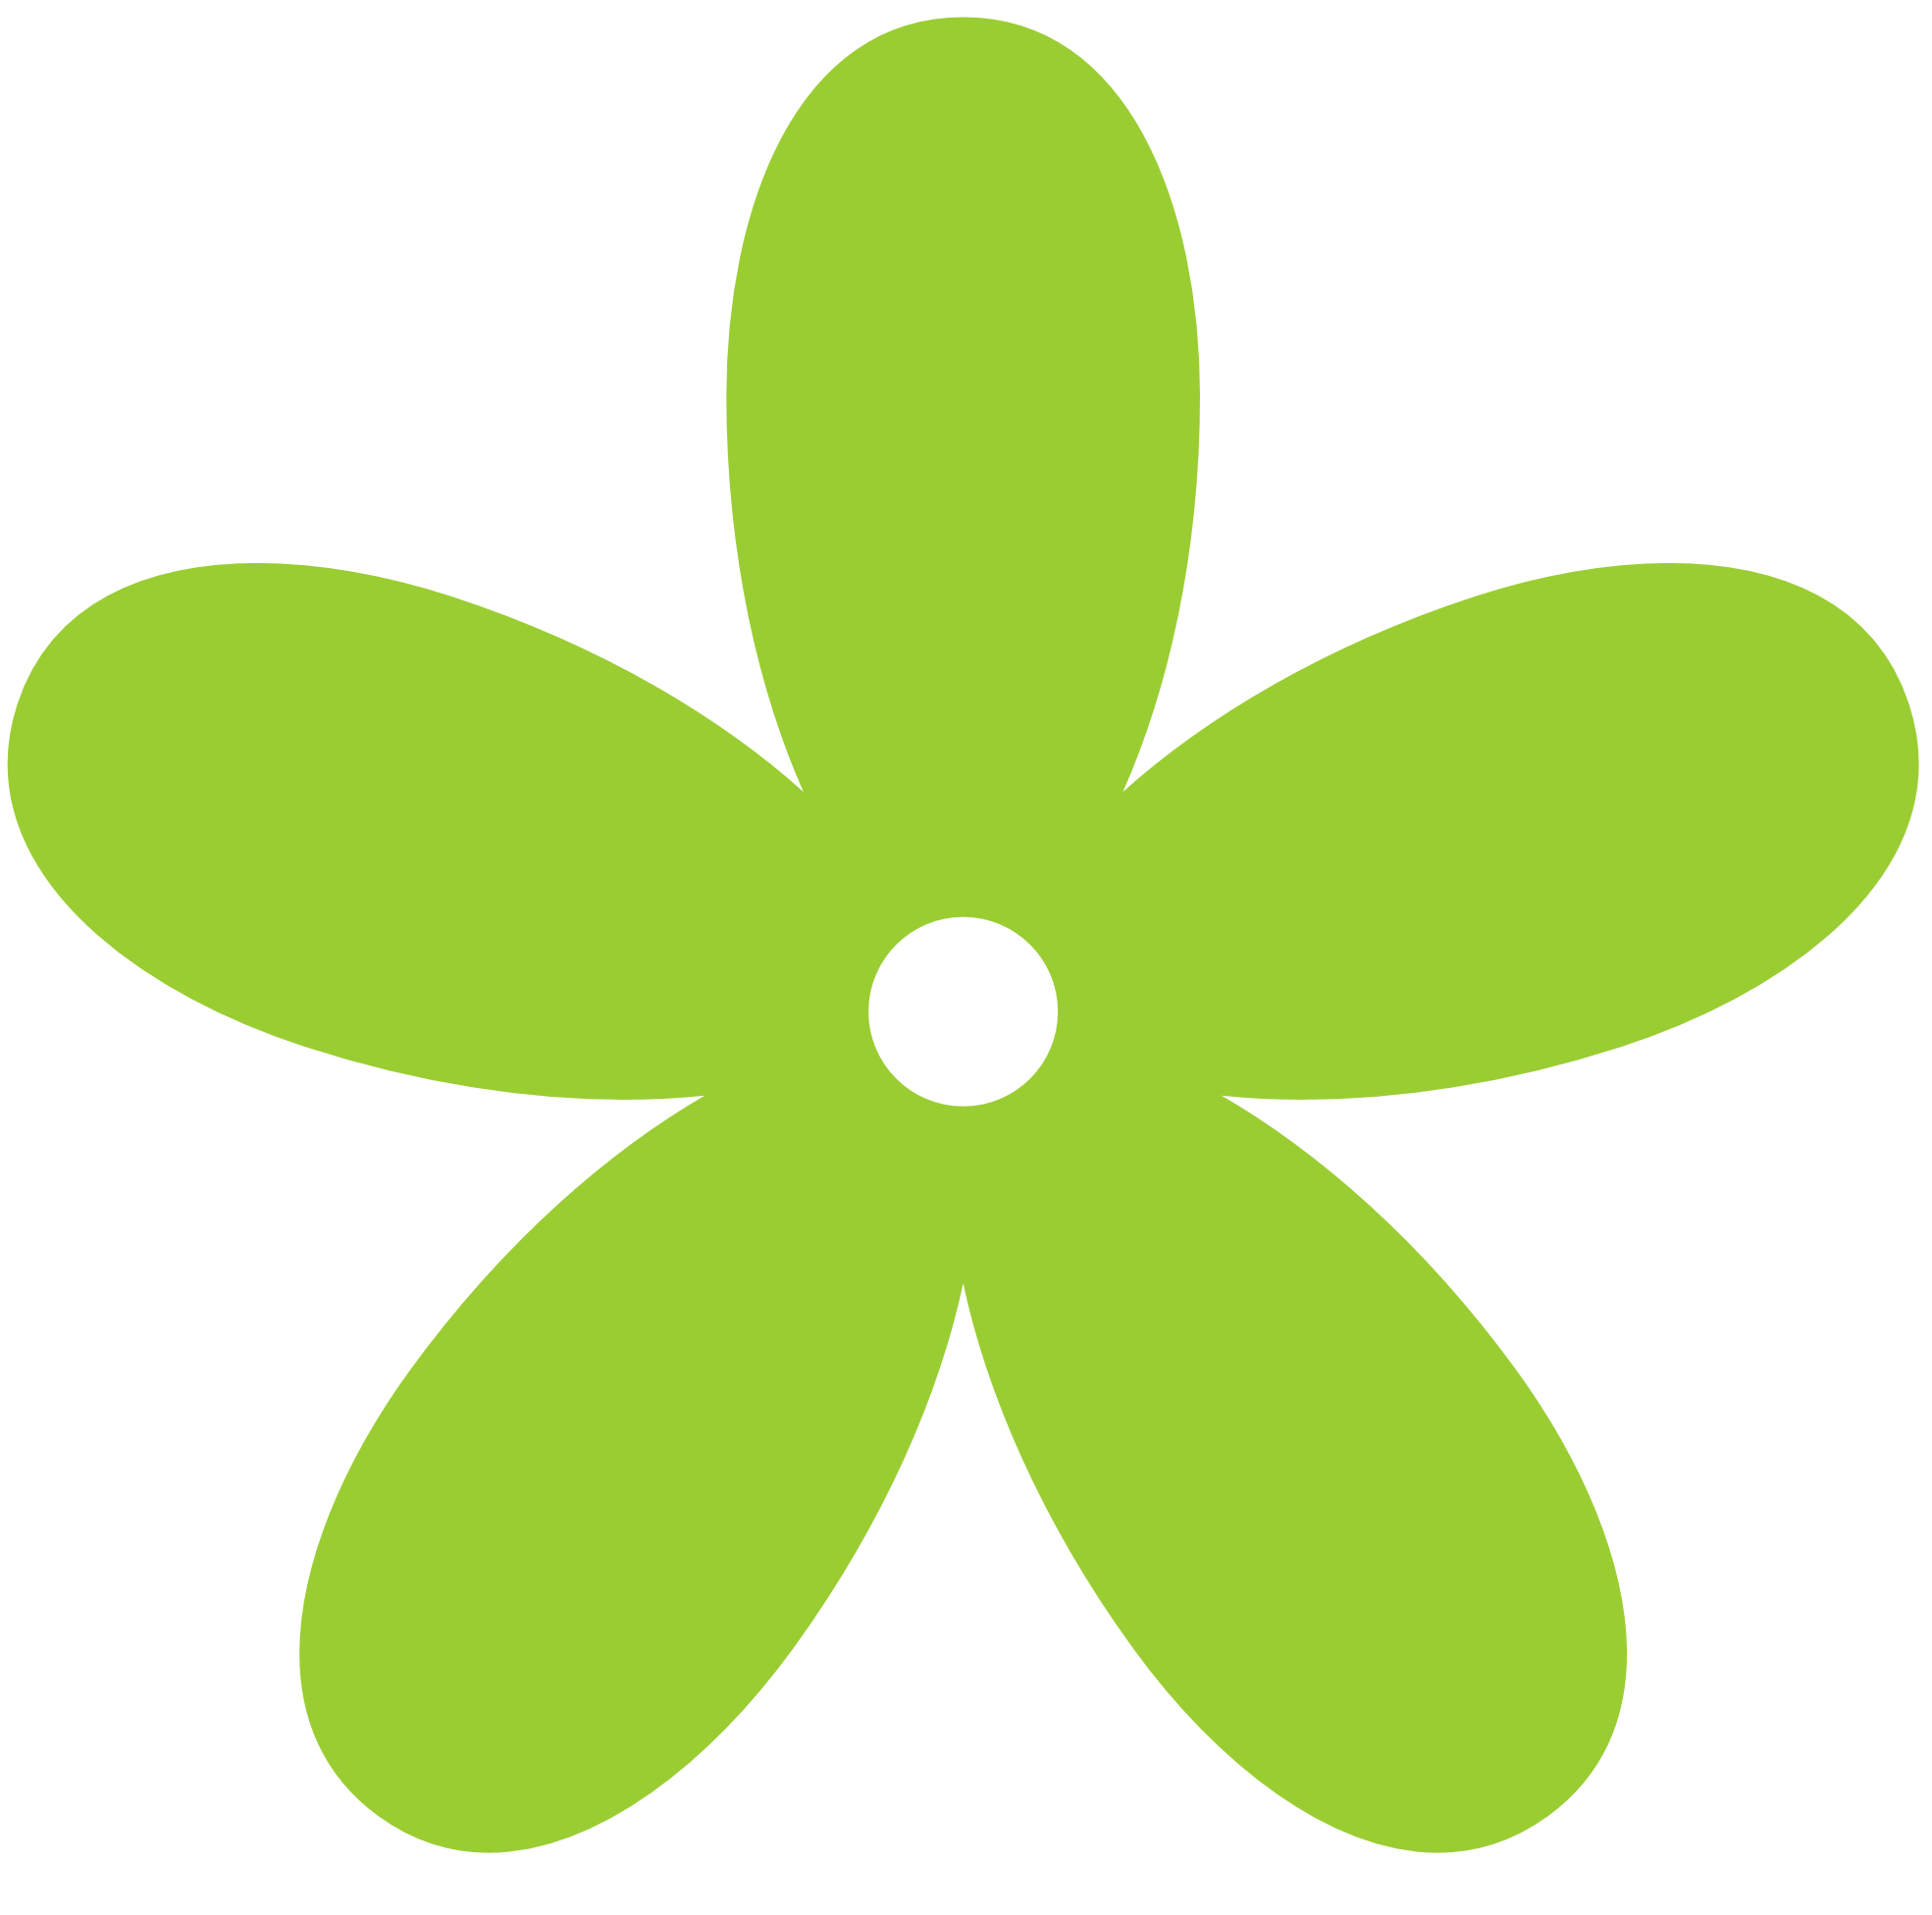 Free Green Floral Cliparts, Download Free Clip Art, Free